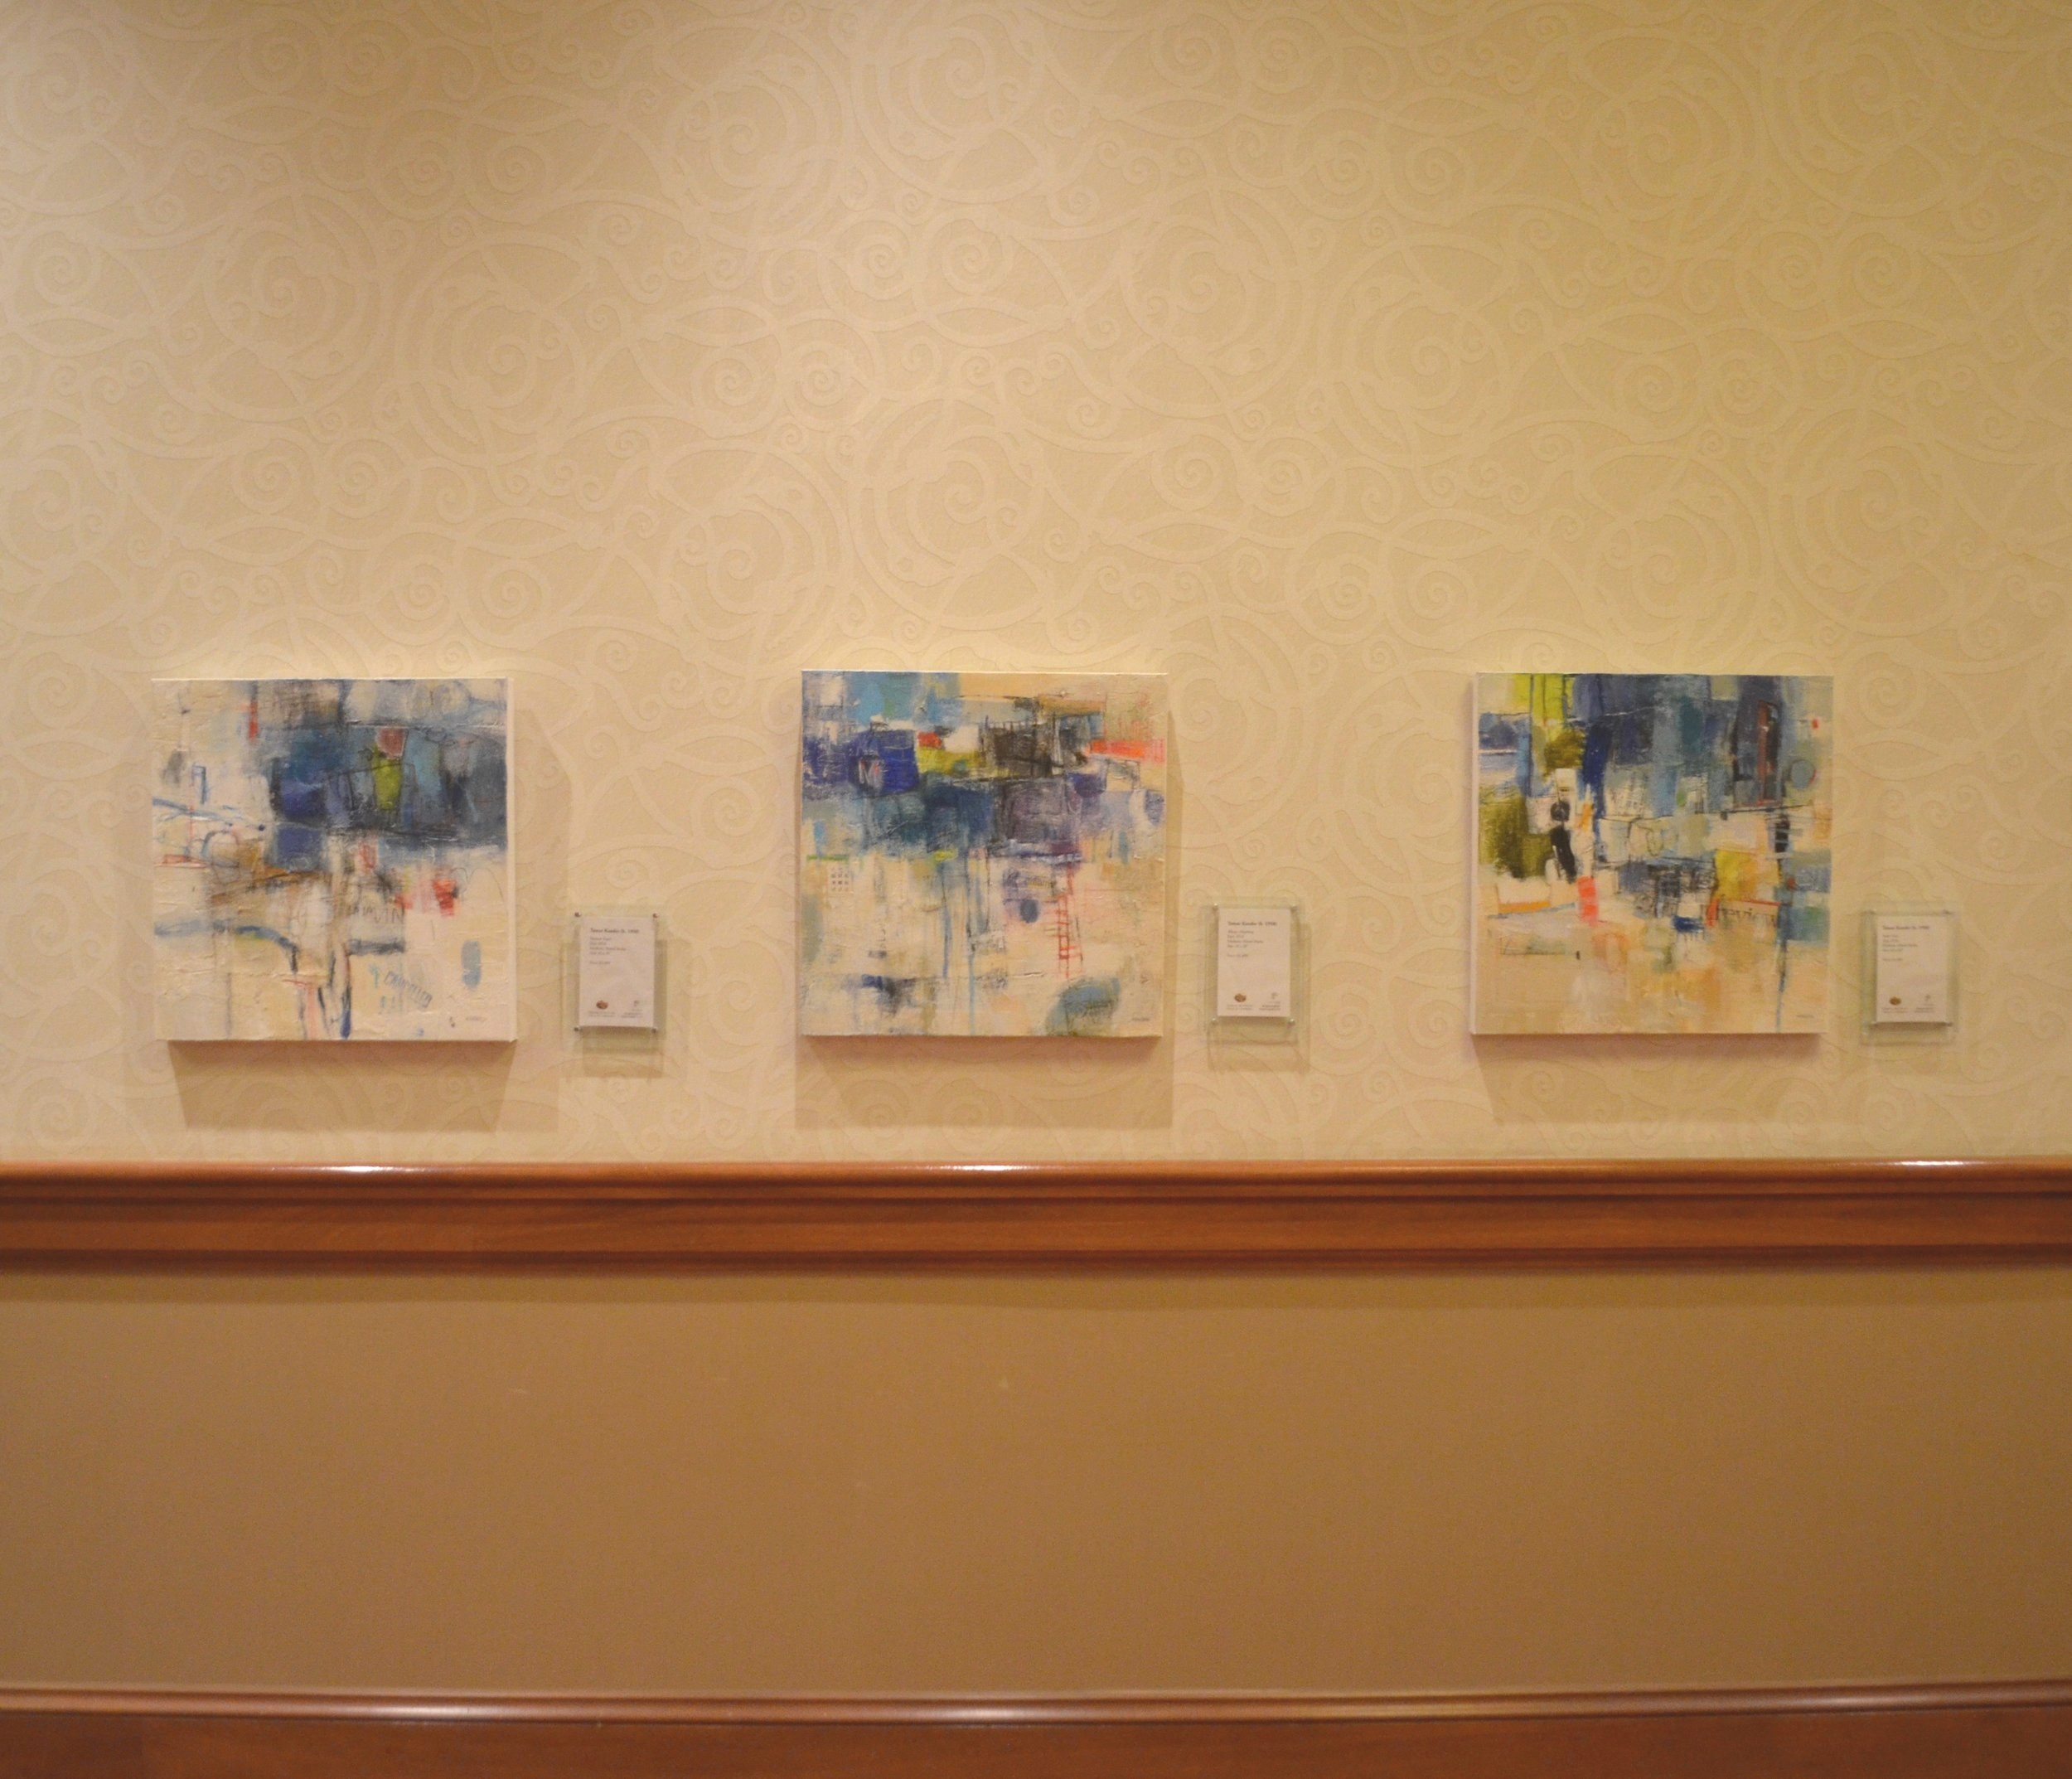 mixed media on canvas by tamar kander, human touch, additional images